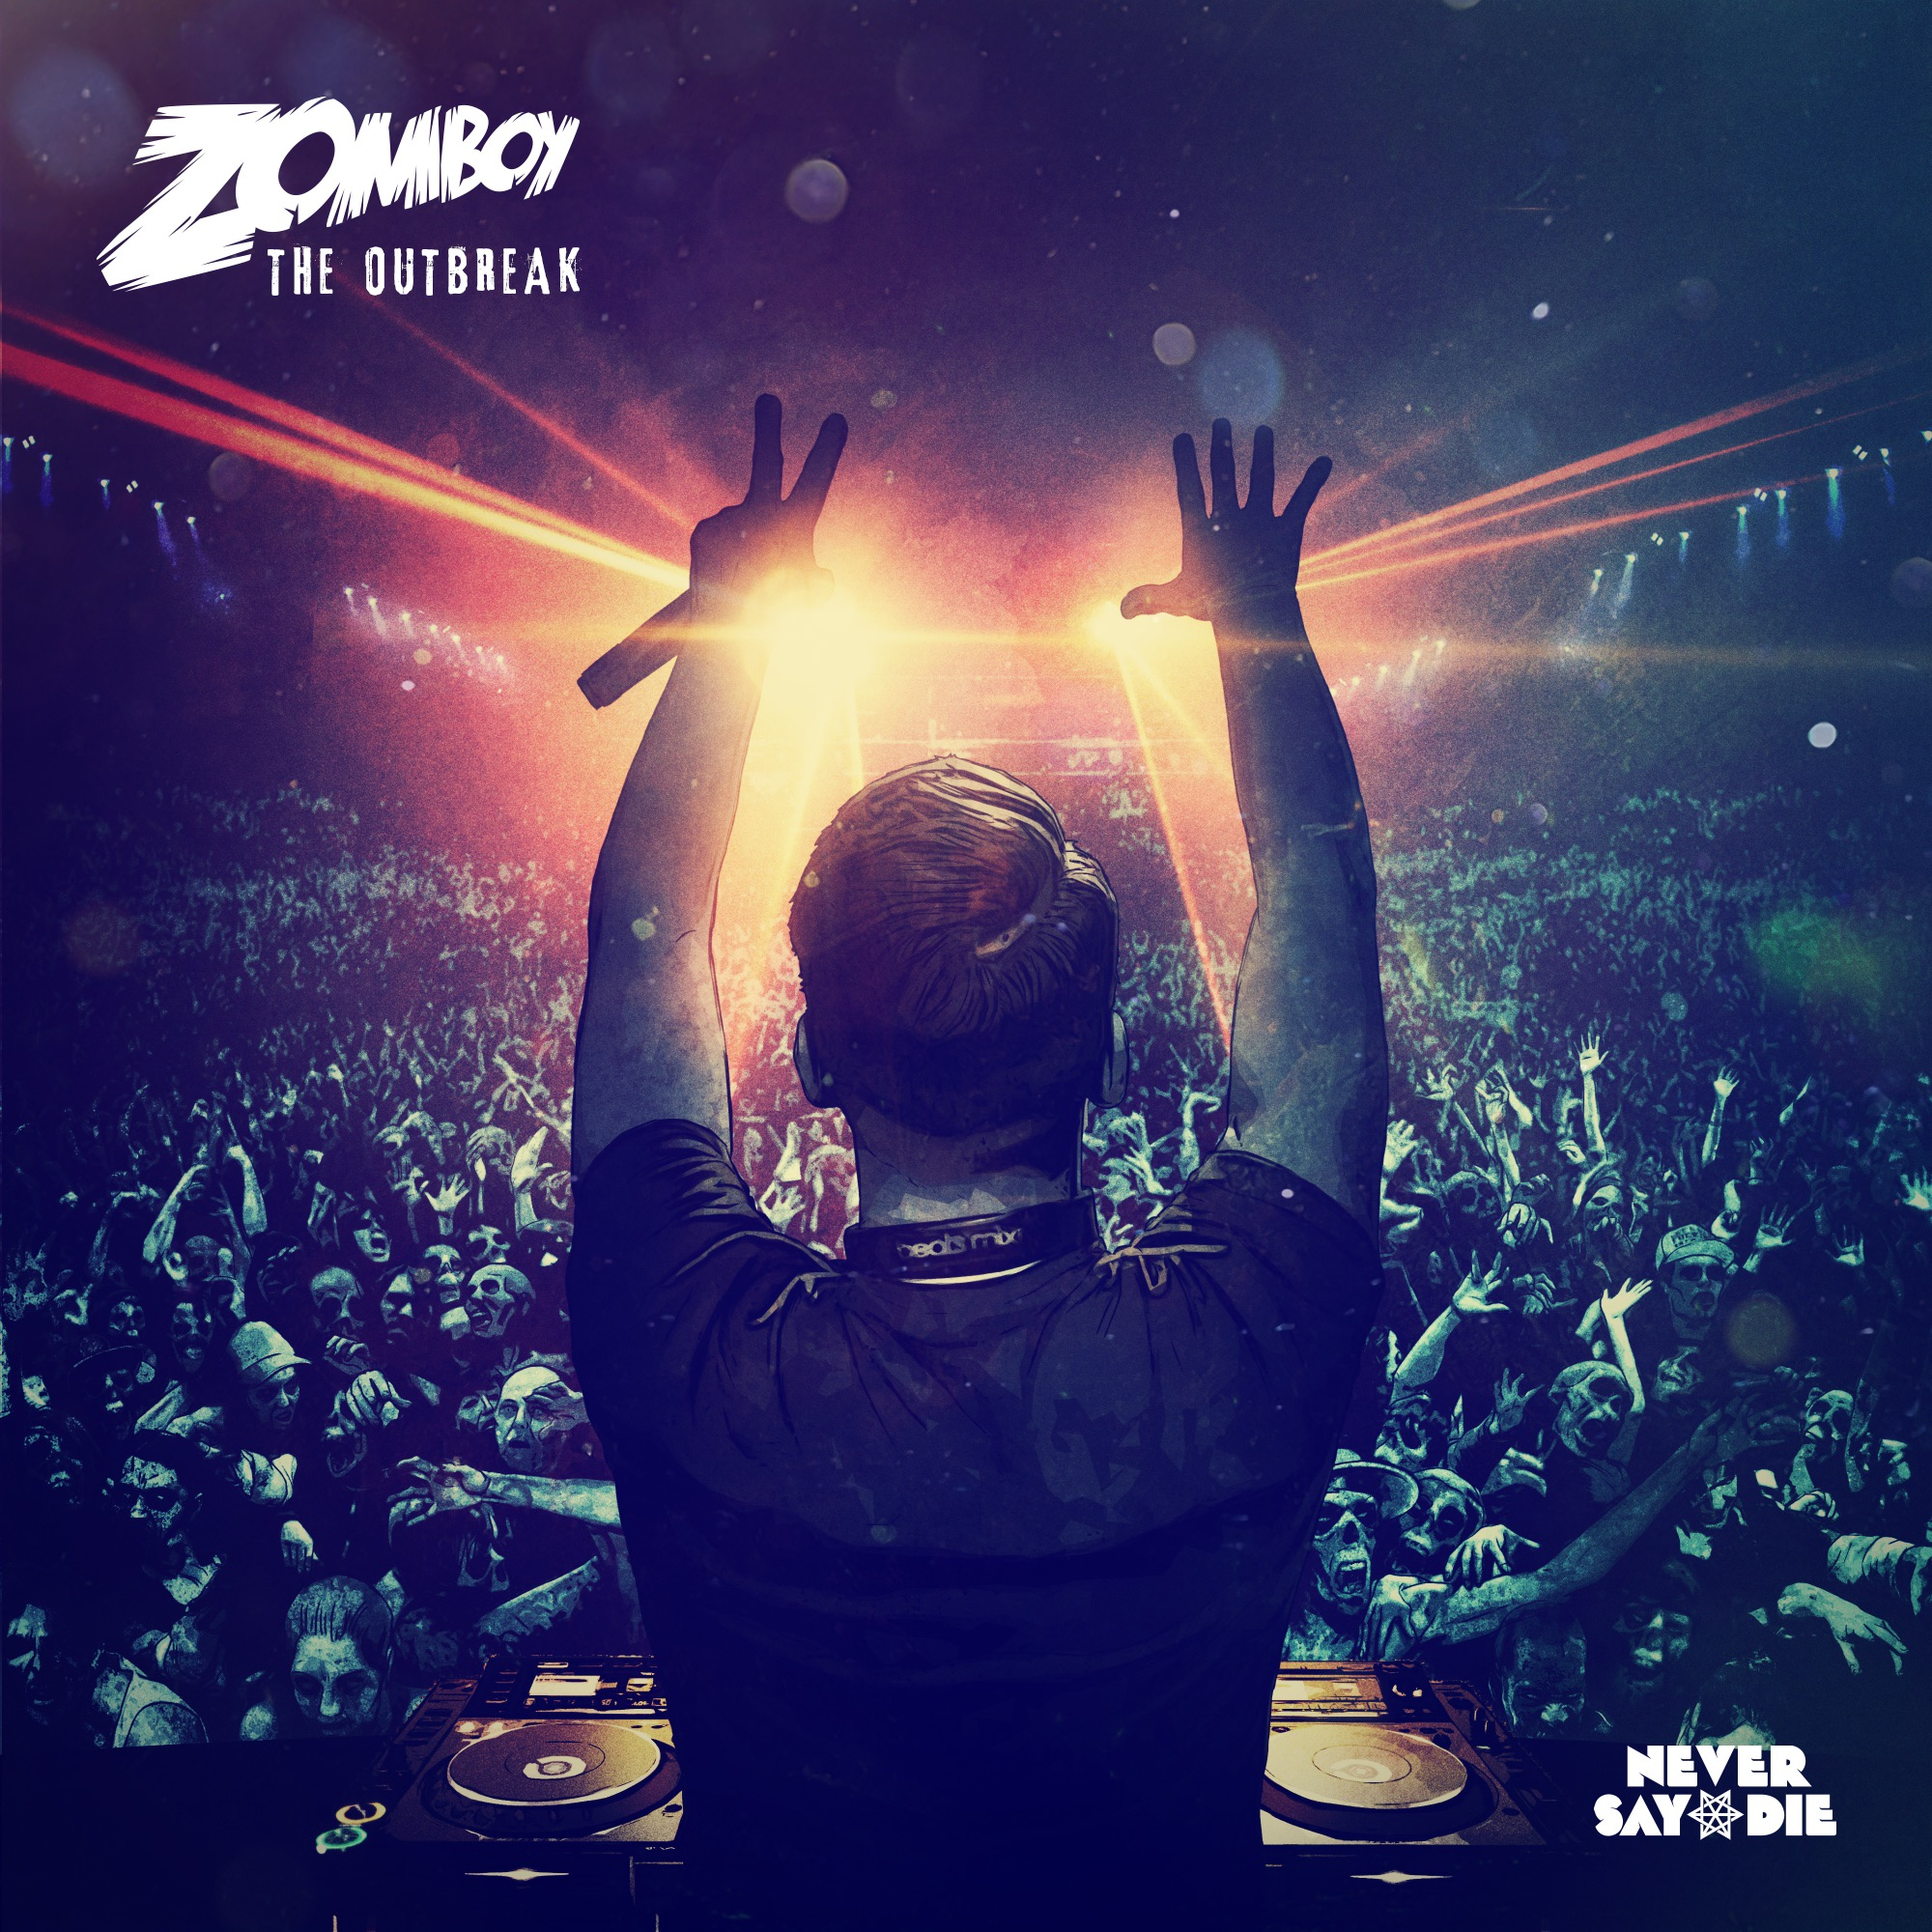 Zomboy album The Outbreak